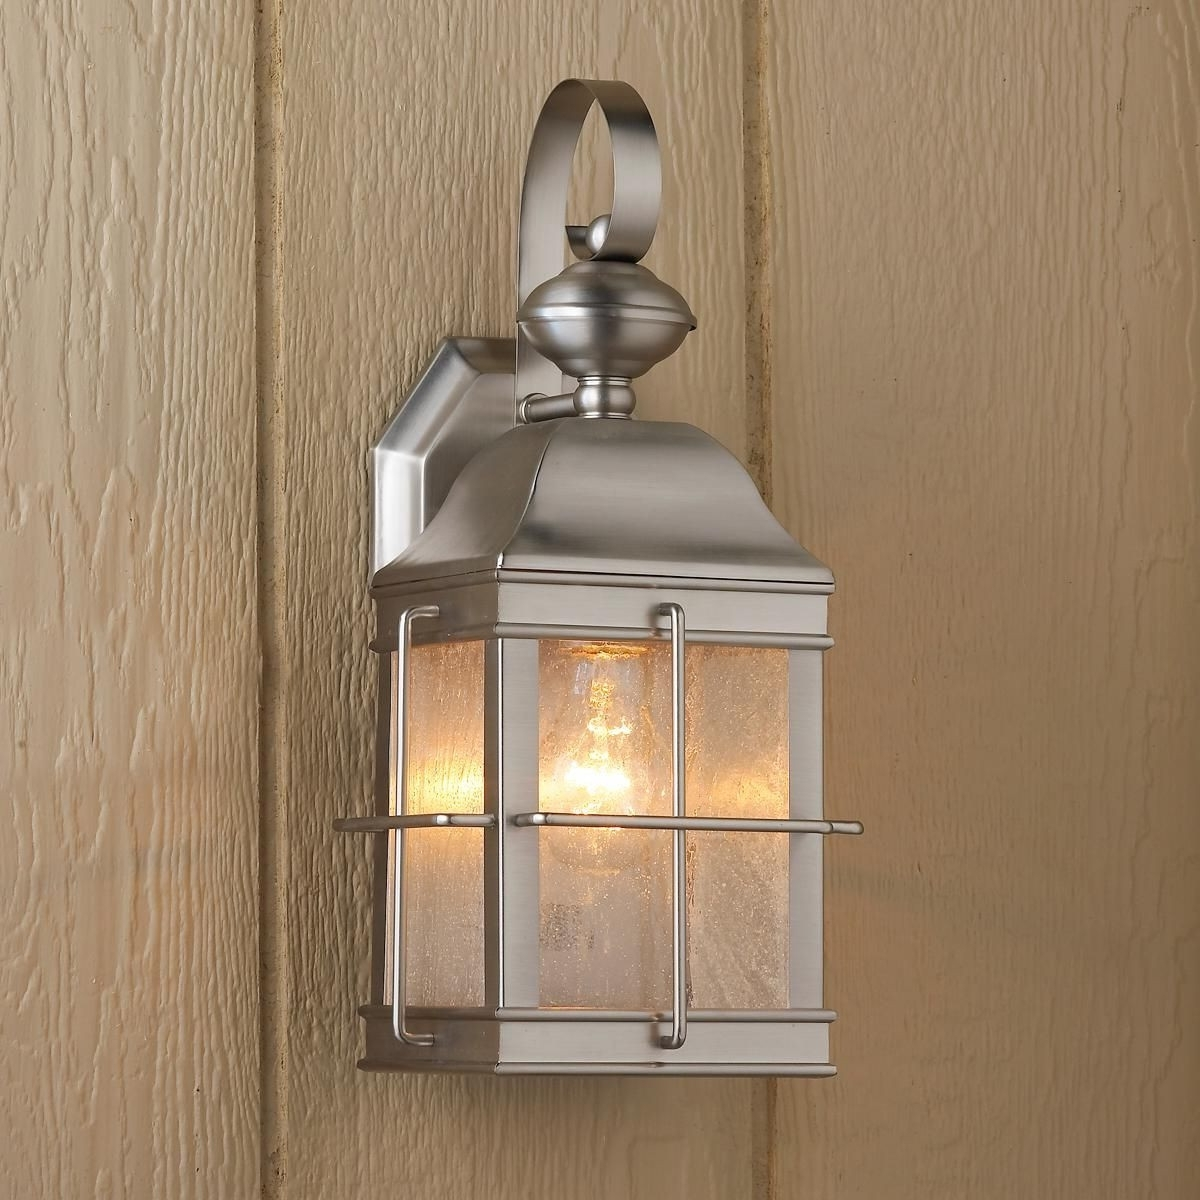 Elegant Outdoor Lanterns Within Most Up To Date Brushed Nickel Outdoor Lights Elegant Nautical Inspired Lantern Wall (View 11 of 20)